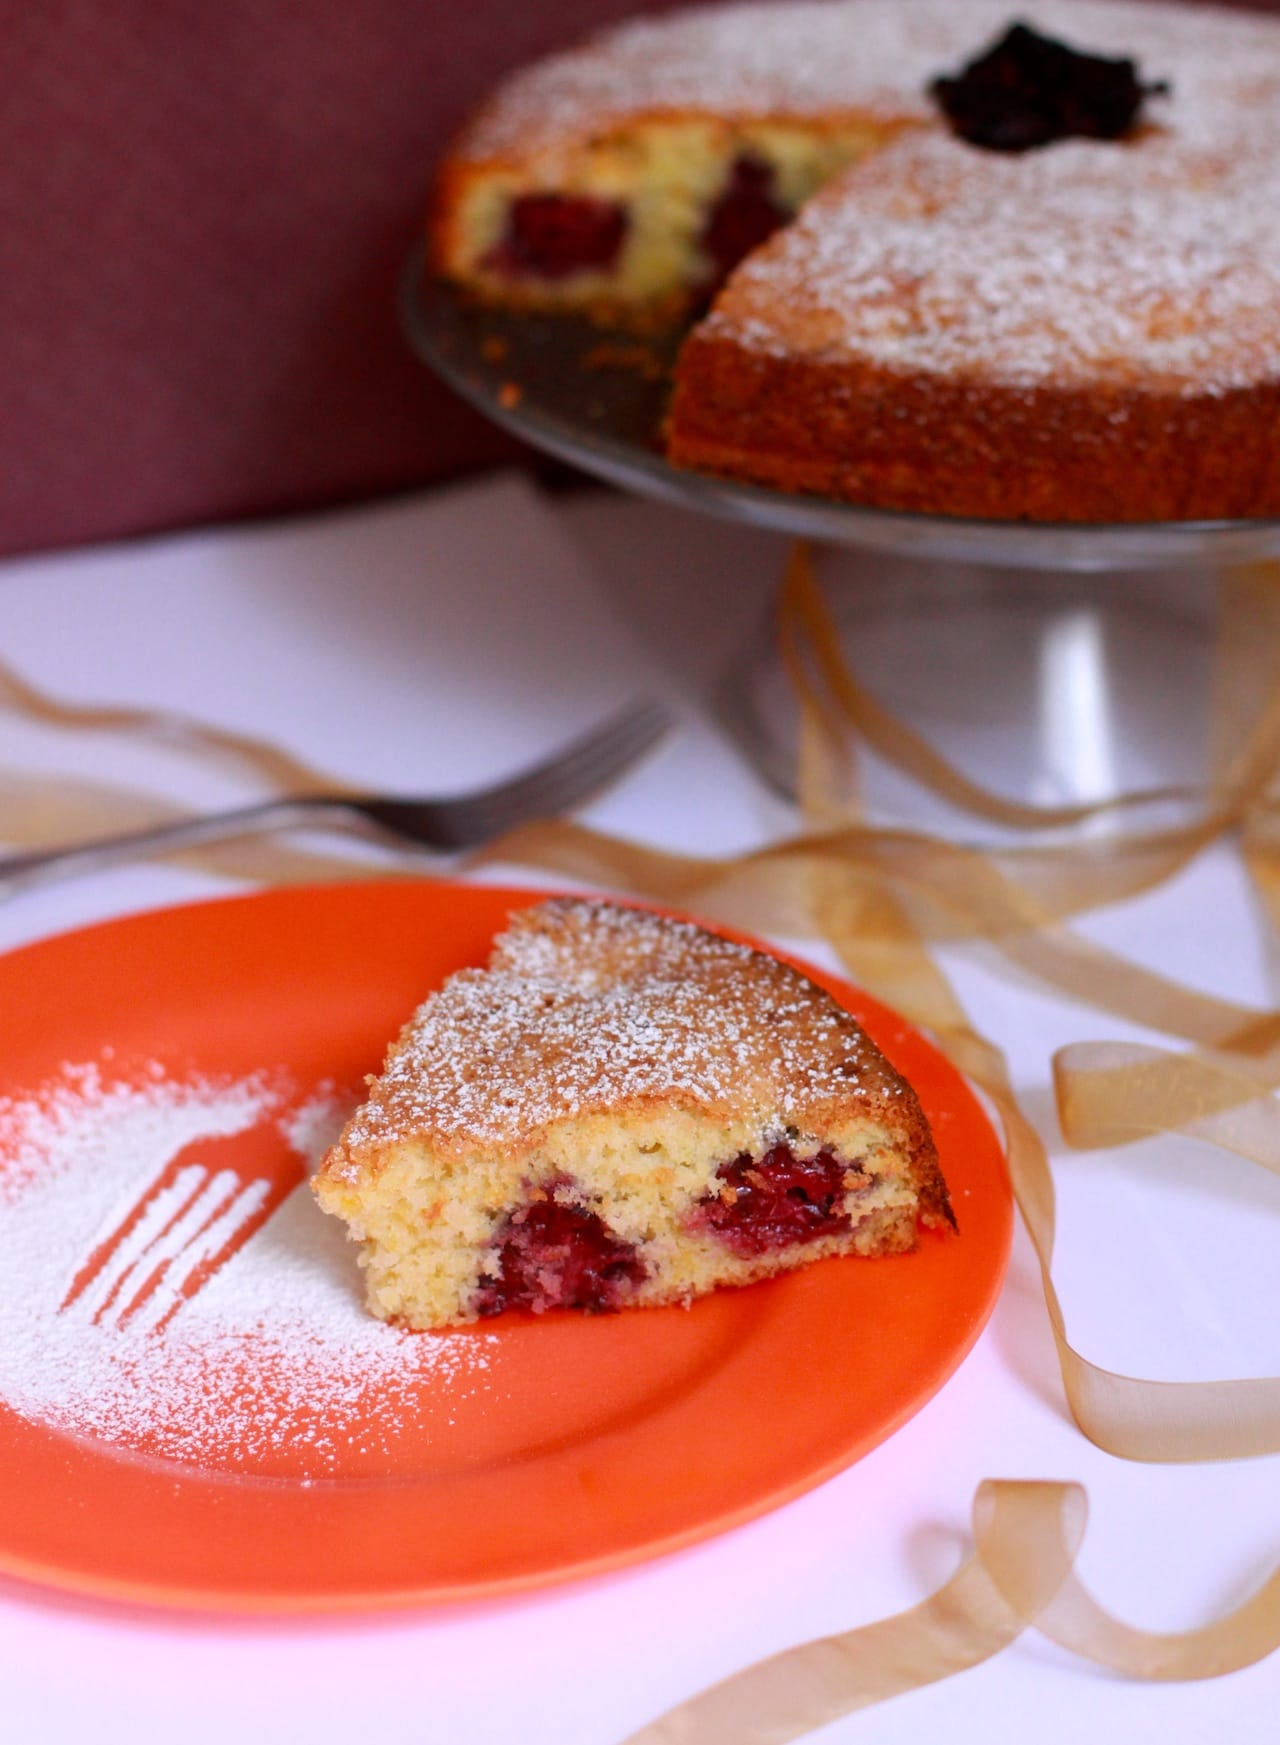 Olive Oil Cake with Blackberries 5